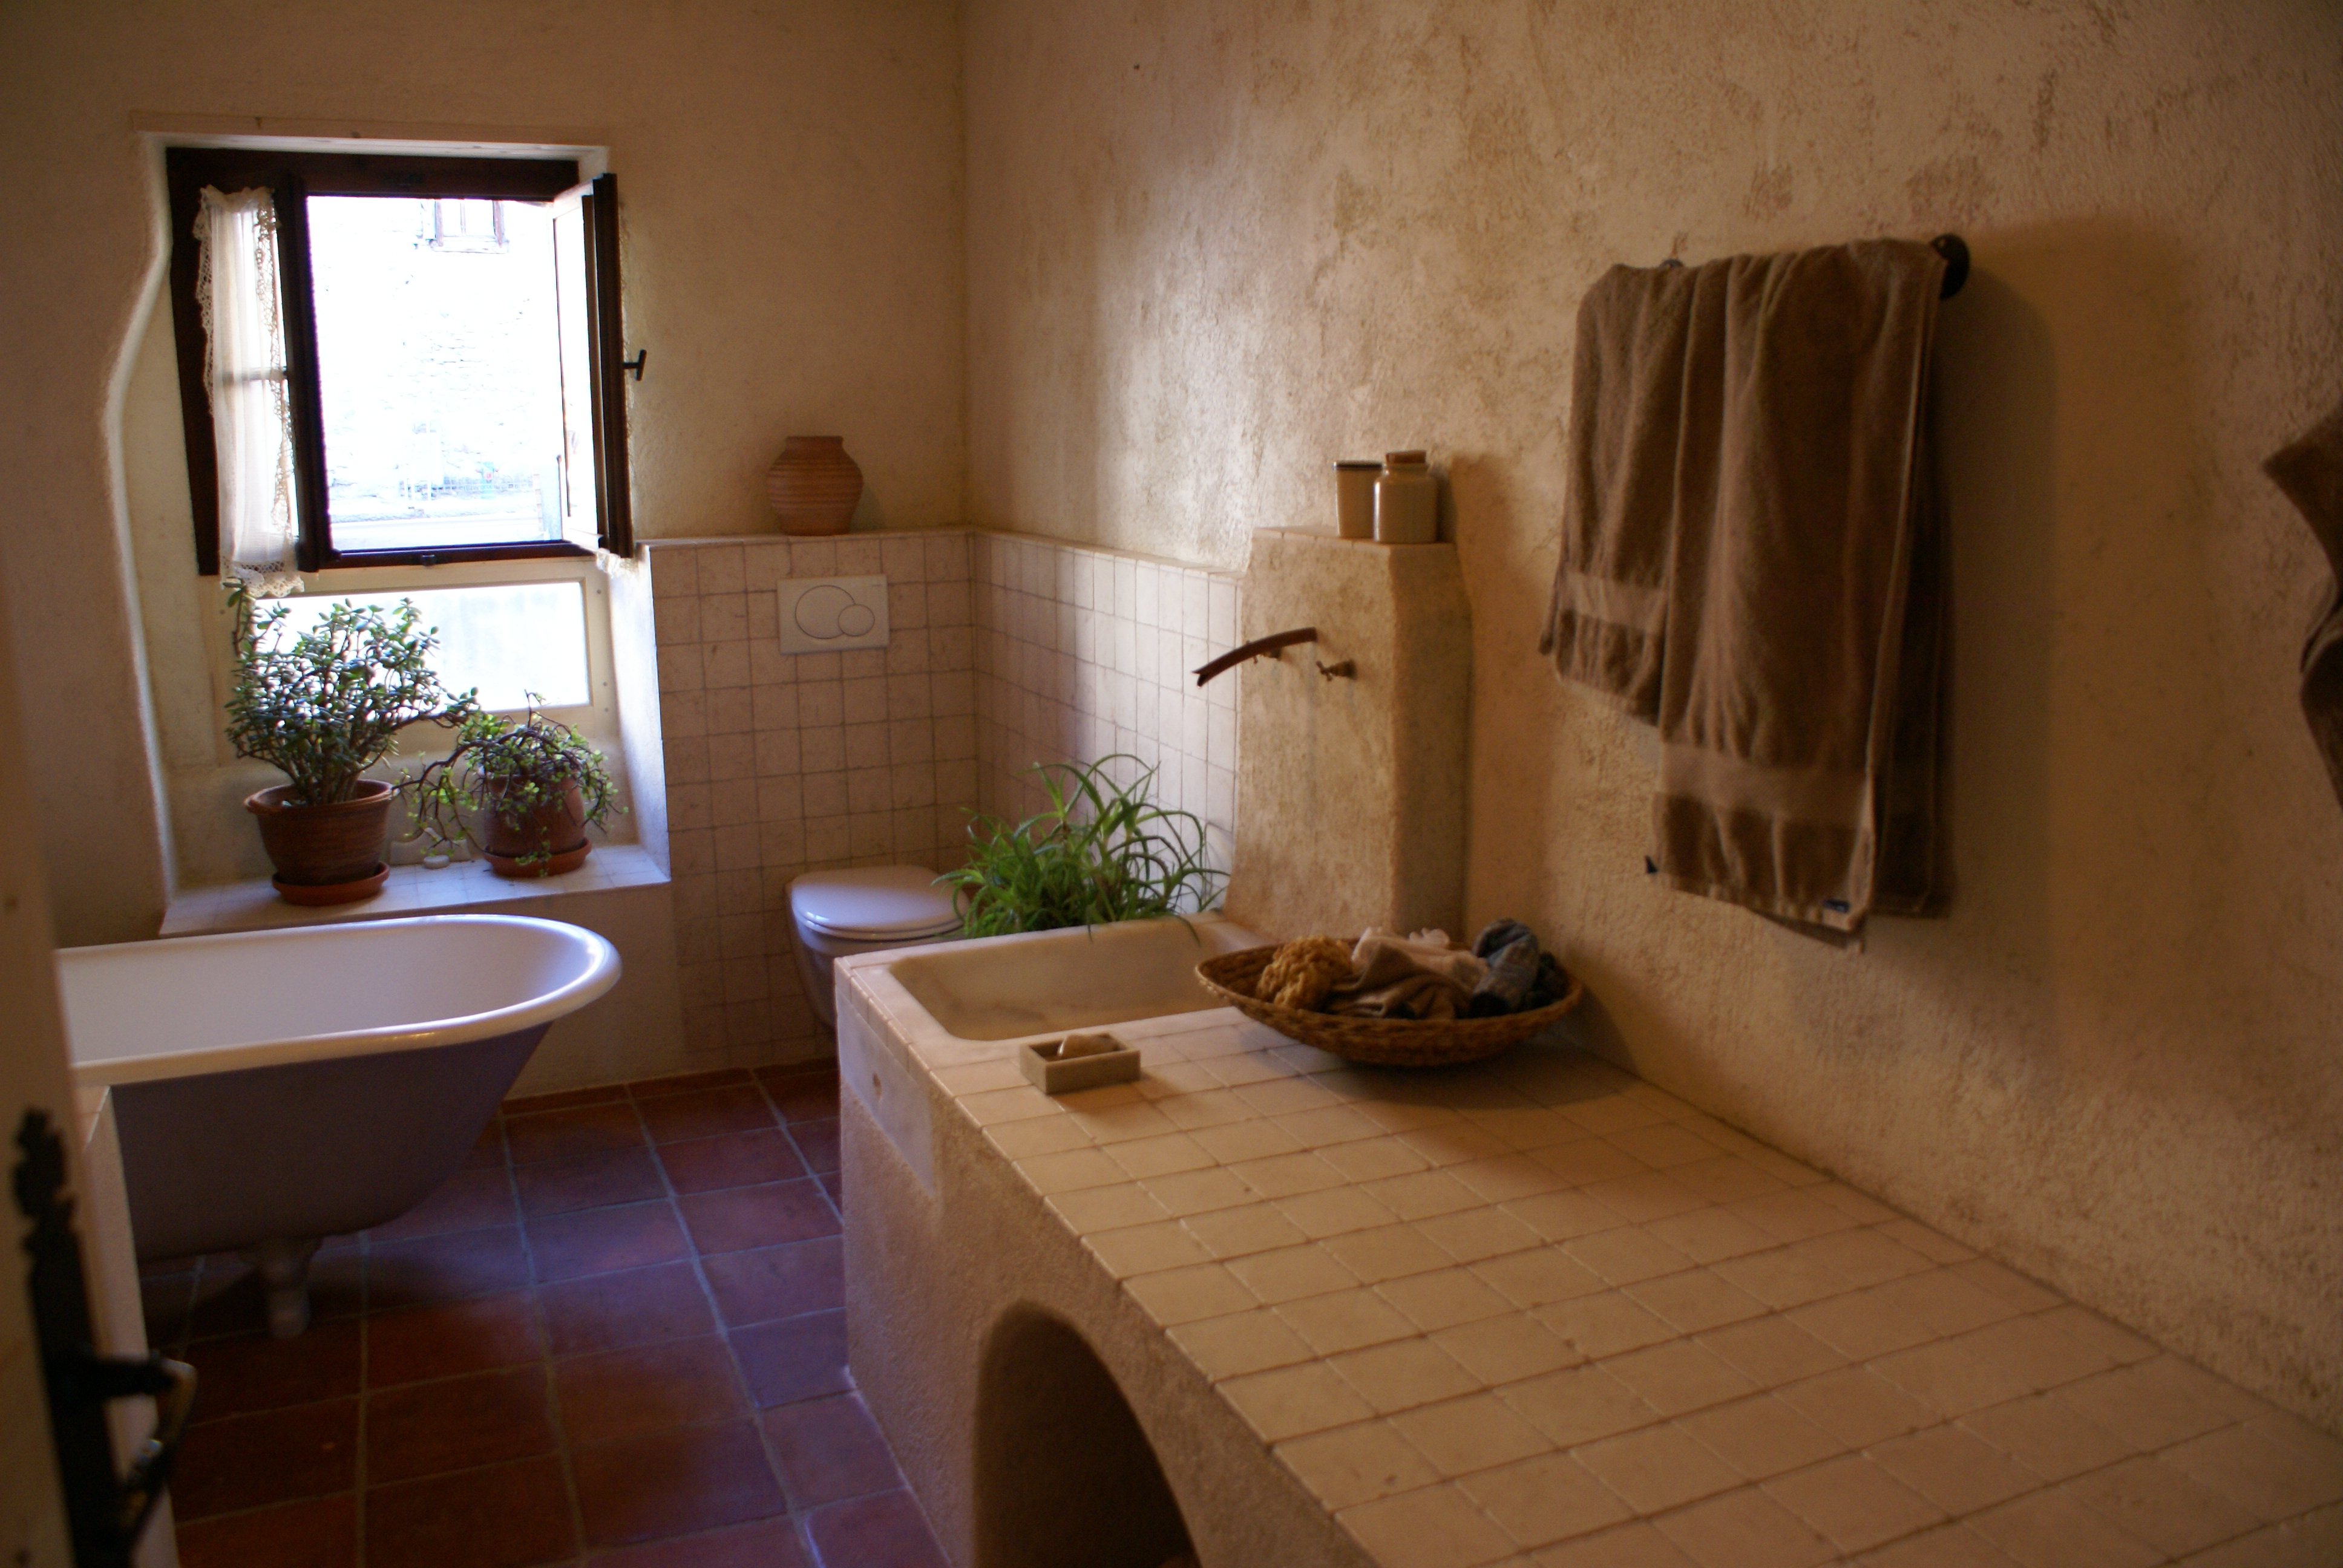 Salle De Bain Style Hammam 301 Moved Permanently